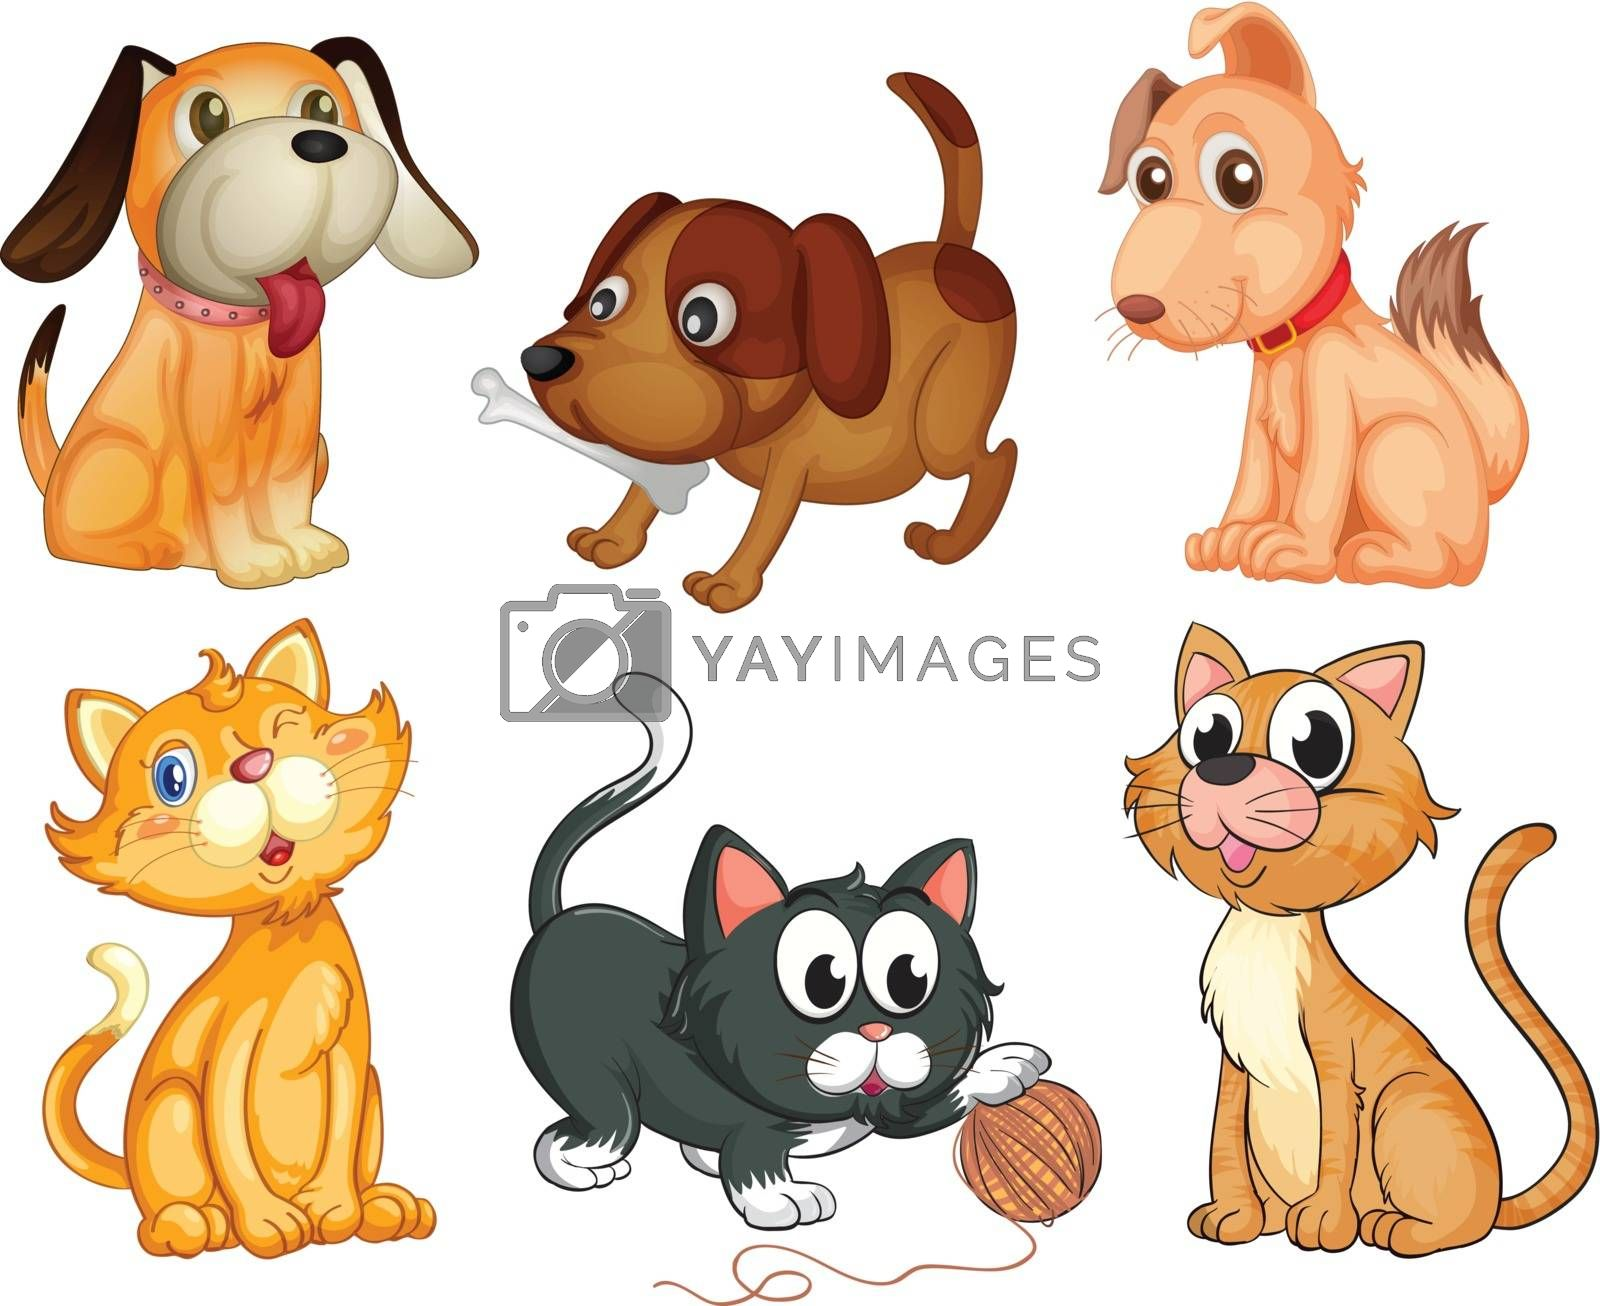 Illustration of the lovable pets on a white background